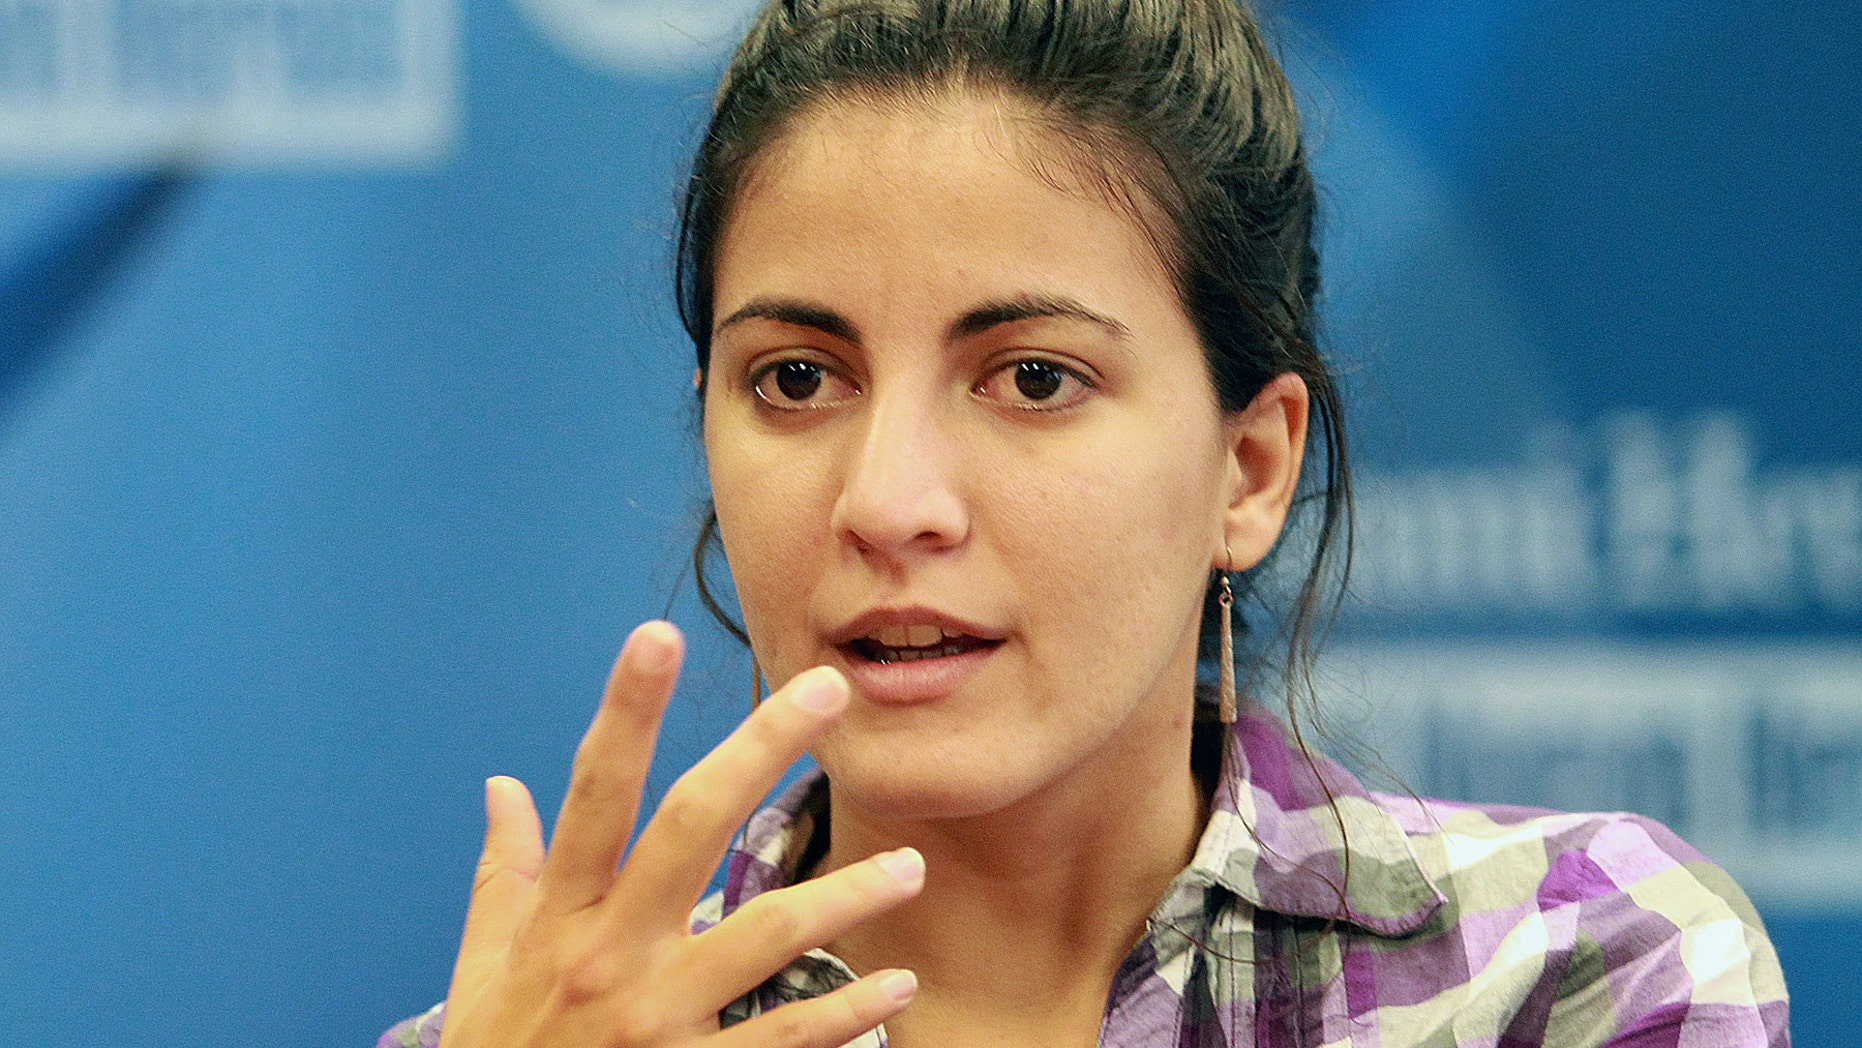 Rosa Maria Paya answers questions about her father at a meeting with the Miami Herald Editorial Board, April 15, 2013, in Miami, Florida. (C.M. Guerrero/Miami Herald/MCT)